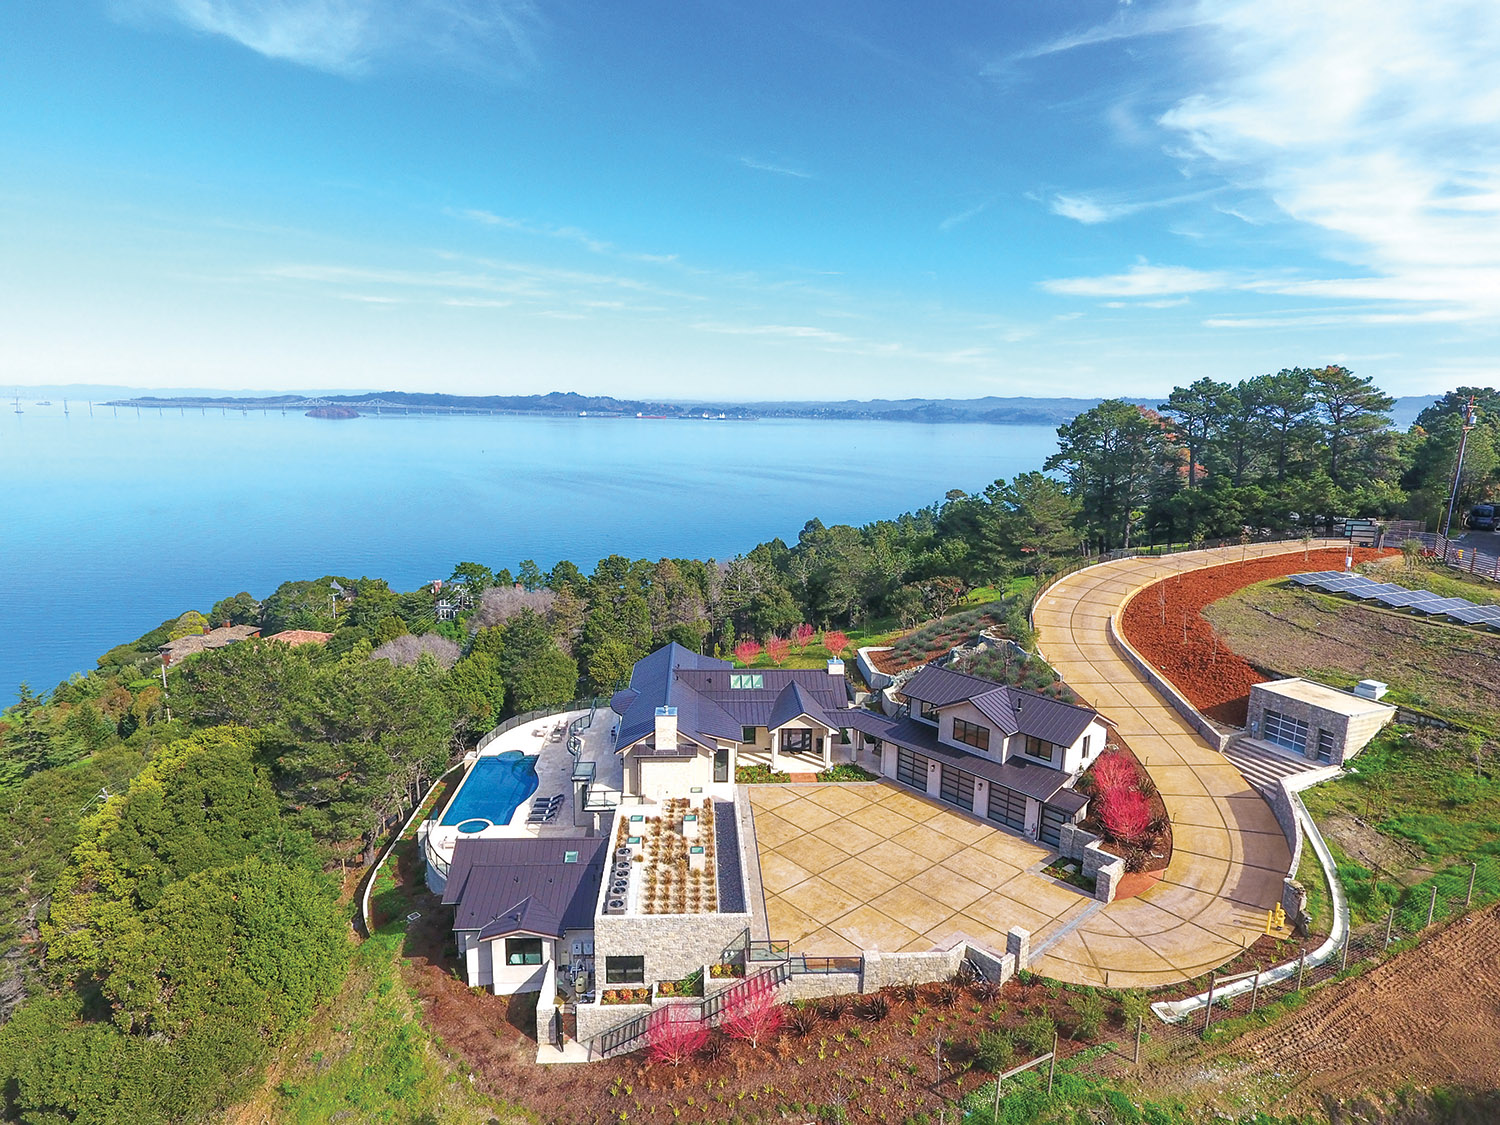 28 Teaberry Lane, Tiburon, CA, listed for $7,495,000